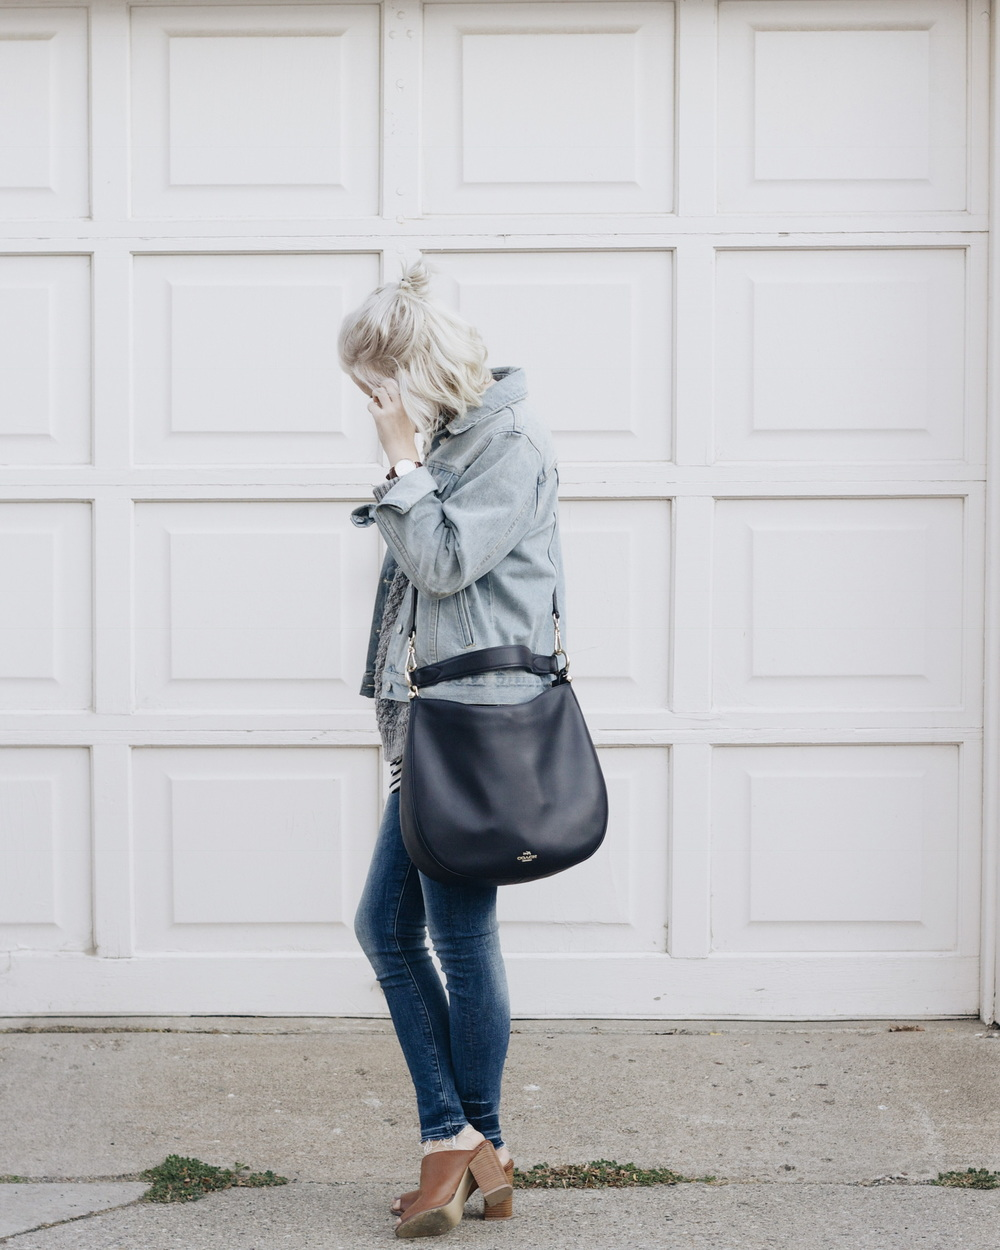 Bag / Coach  Denim Pants / H&M Denim Jacket / Brandy Melville